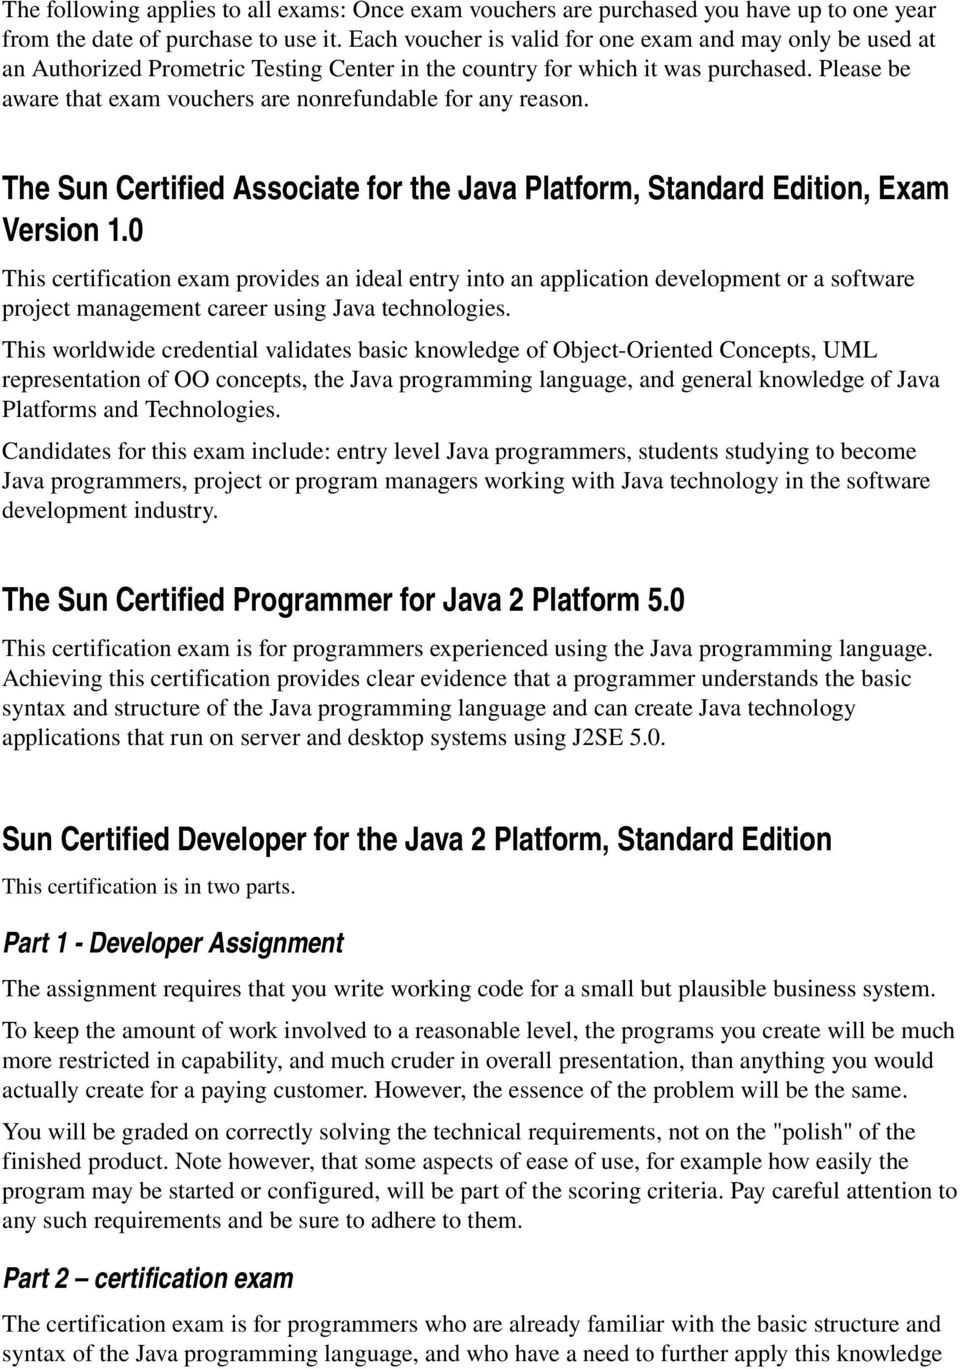 Please be aware that exam vouchers are nonrefundable for any reason. The Sun Certified Associate for the Java Platform, Standard Edition, Exam Version 1.